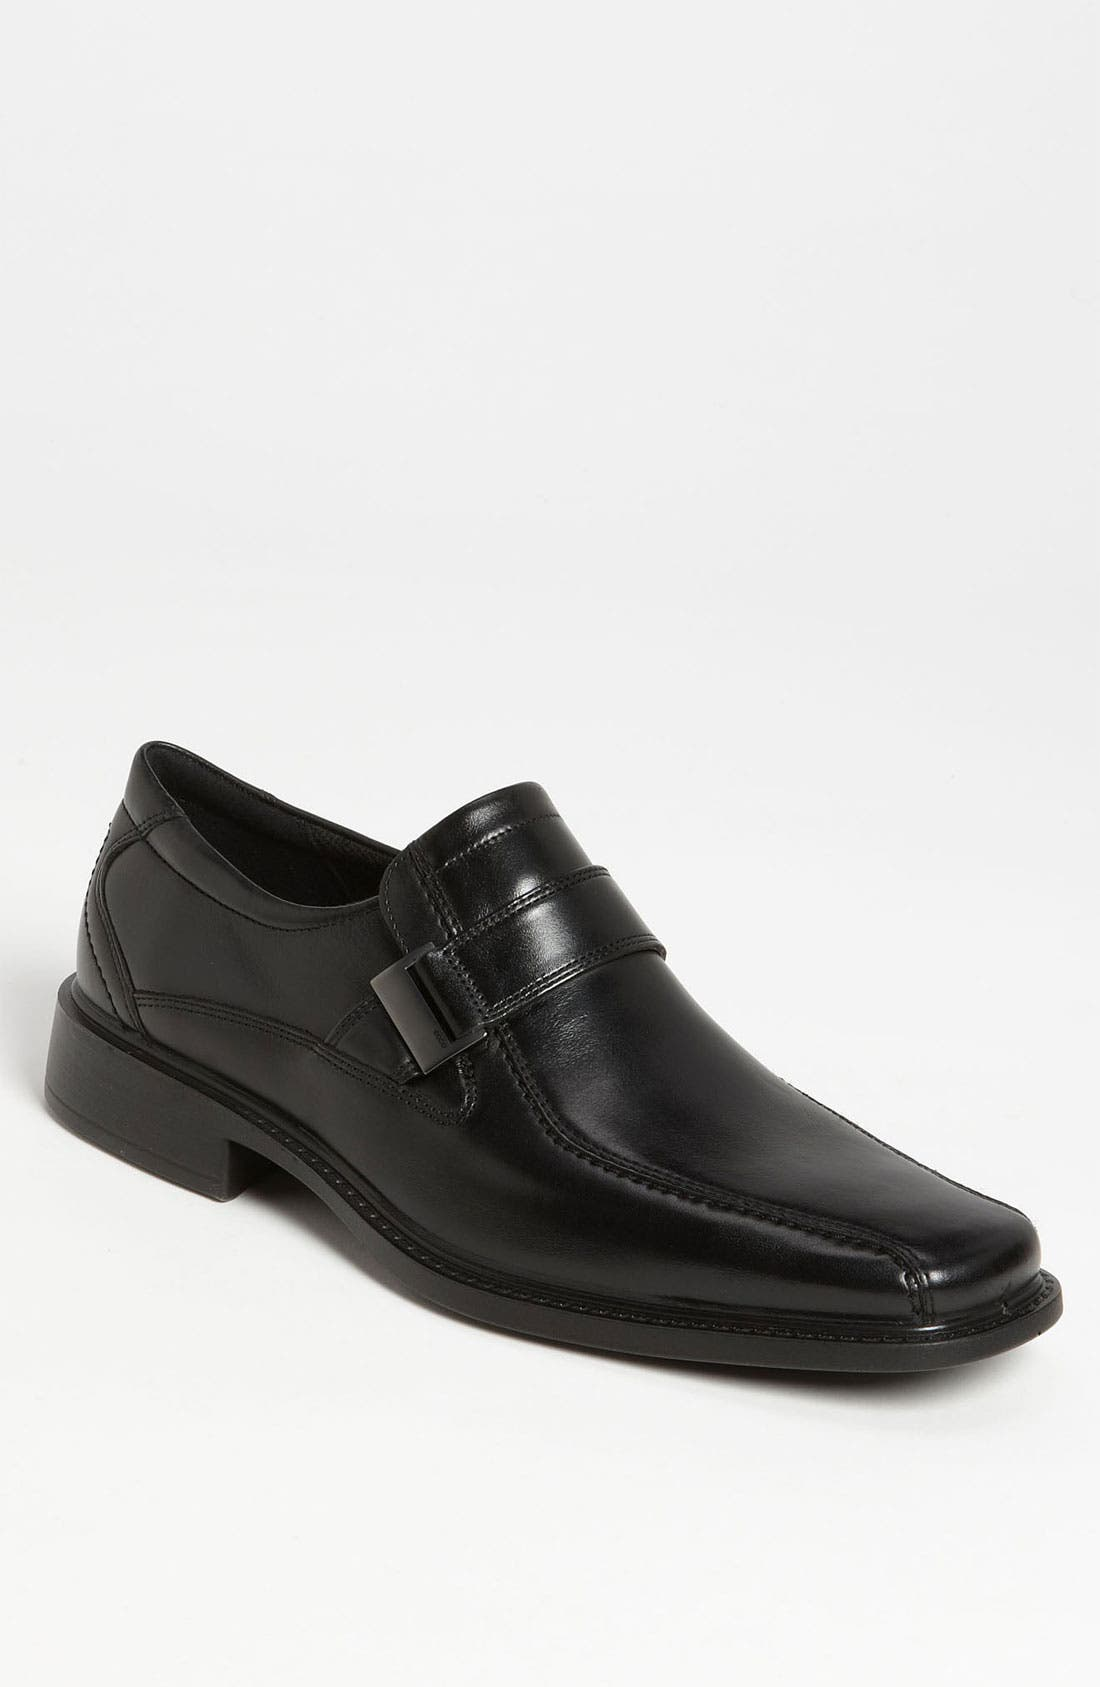 'New Jersey' Venetian Loafer,                             Main thumbnail 1, color,                             001